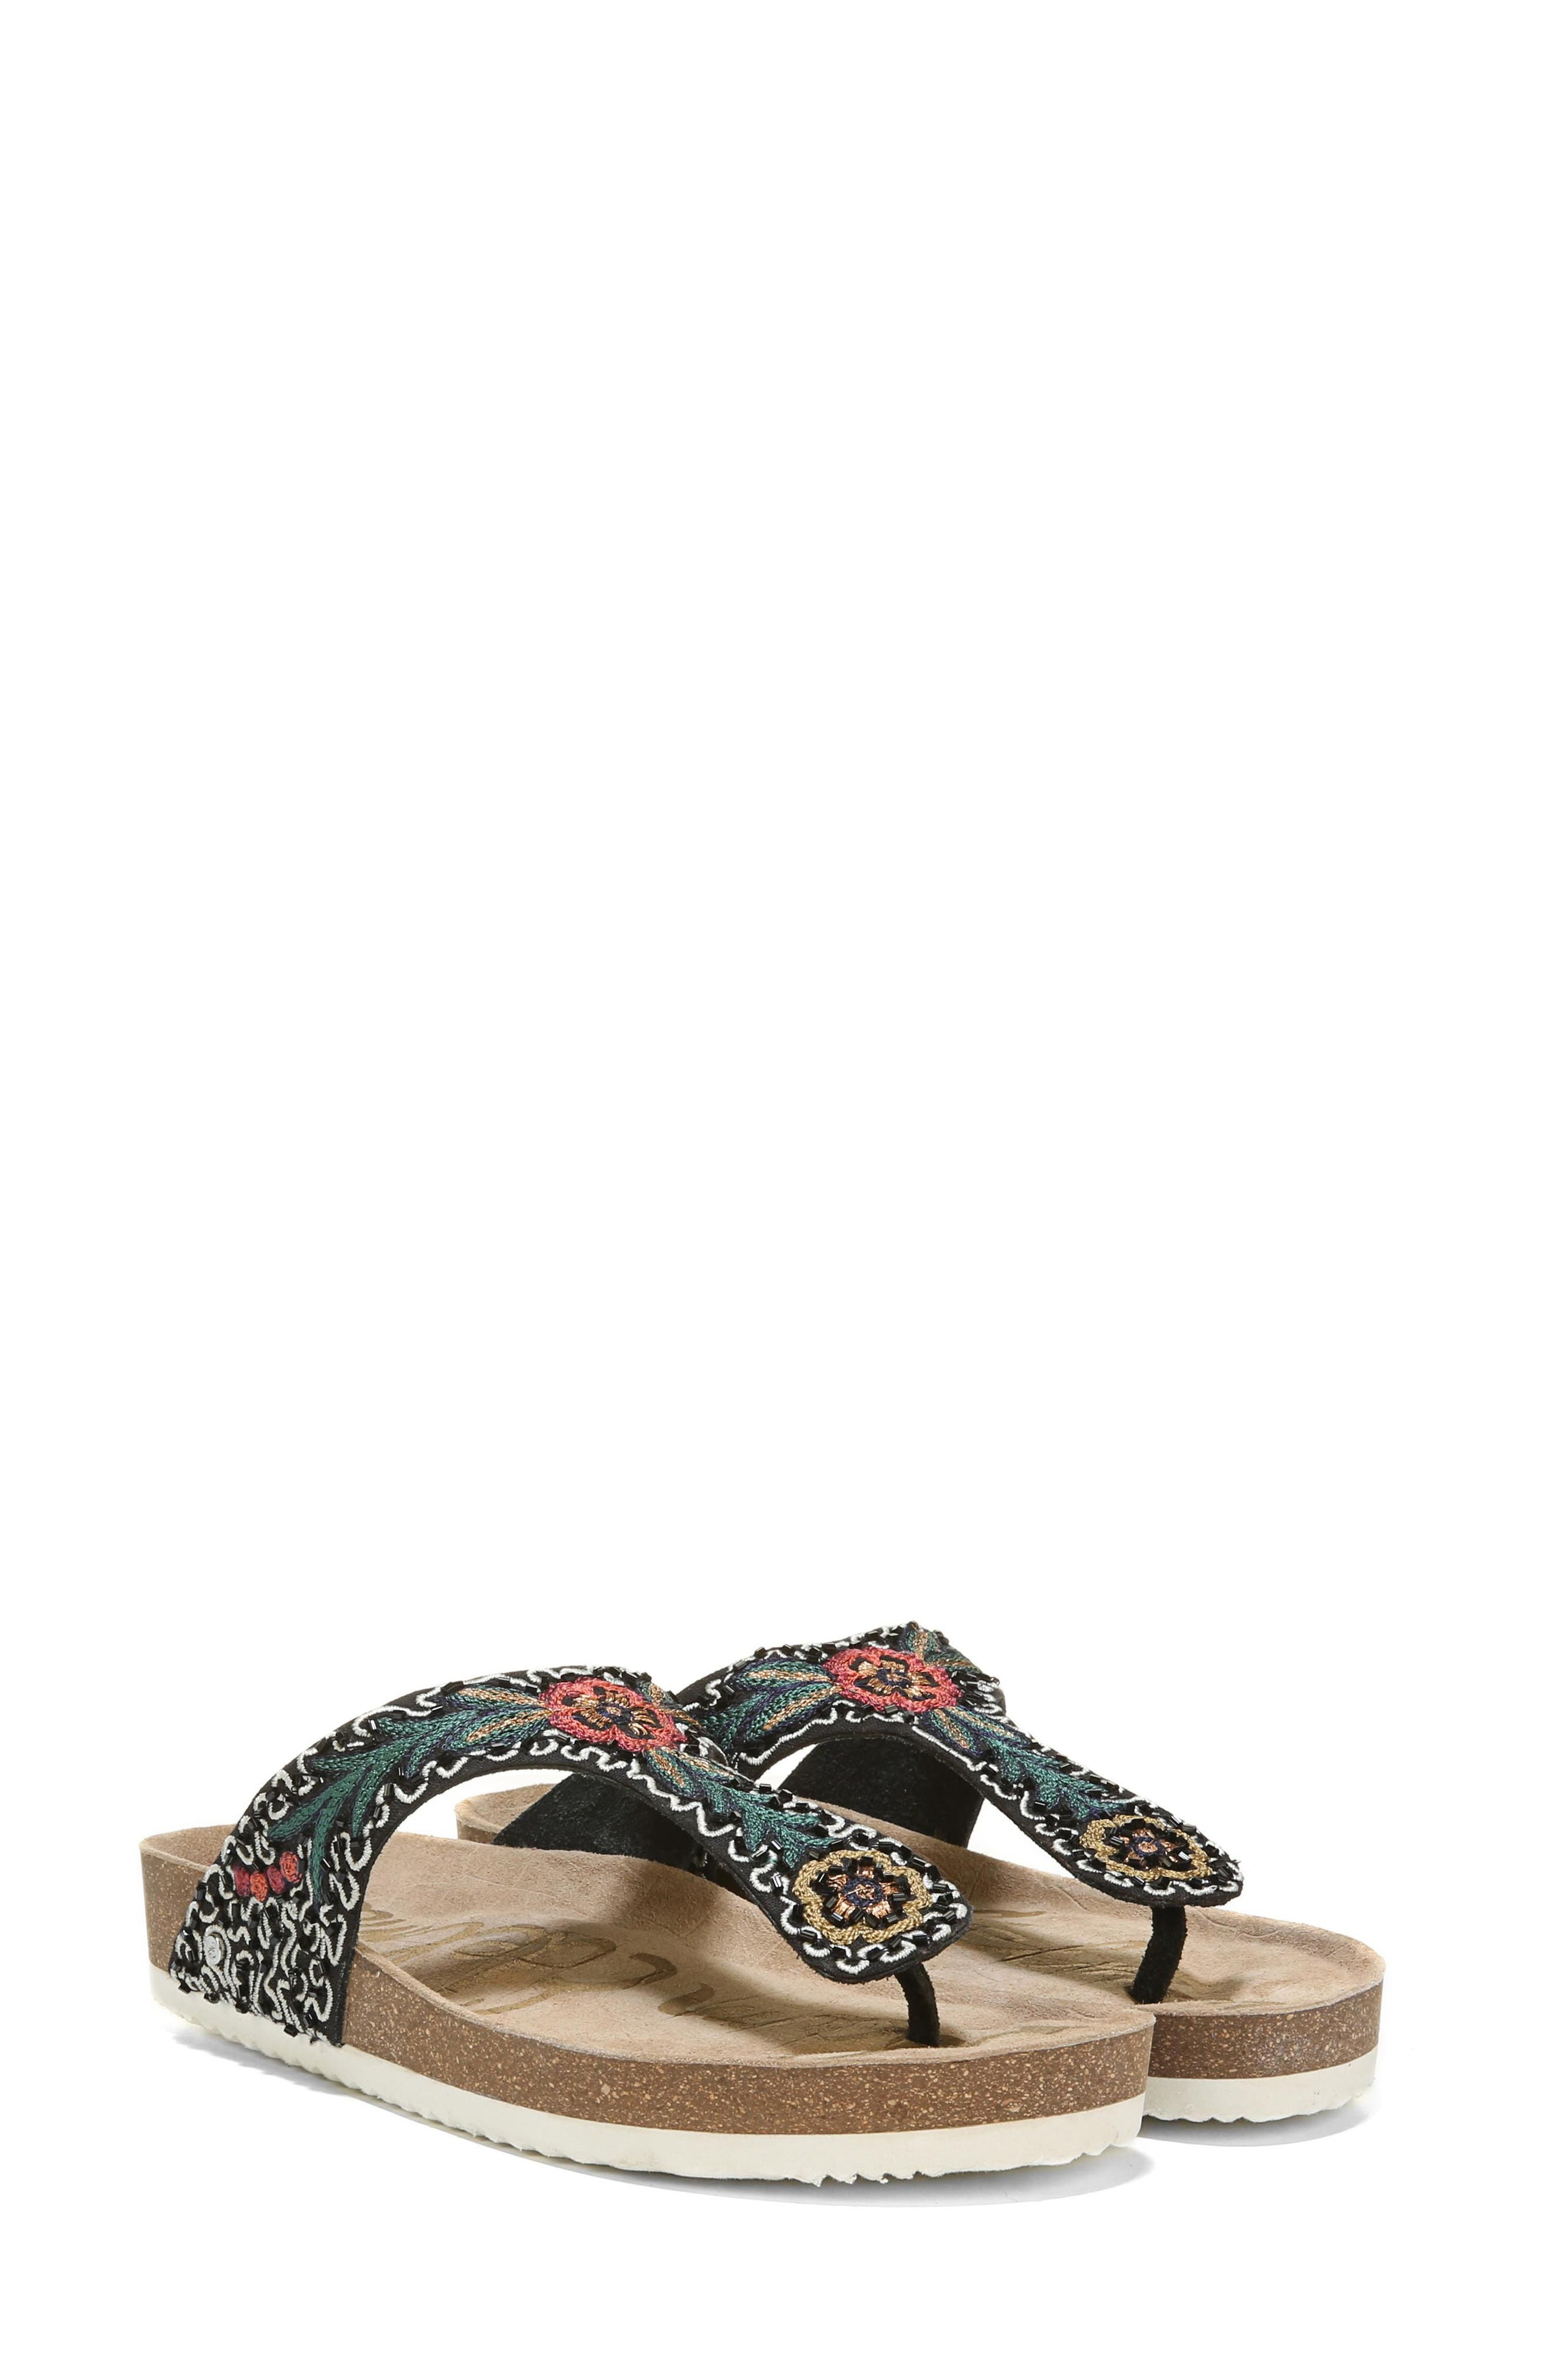 Olivie Beaded Flip Flop,                             Main thumbnail 1, color,                             001